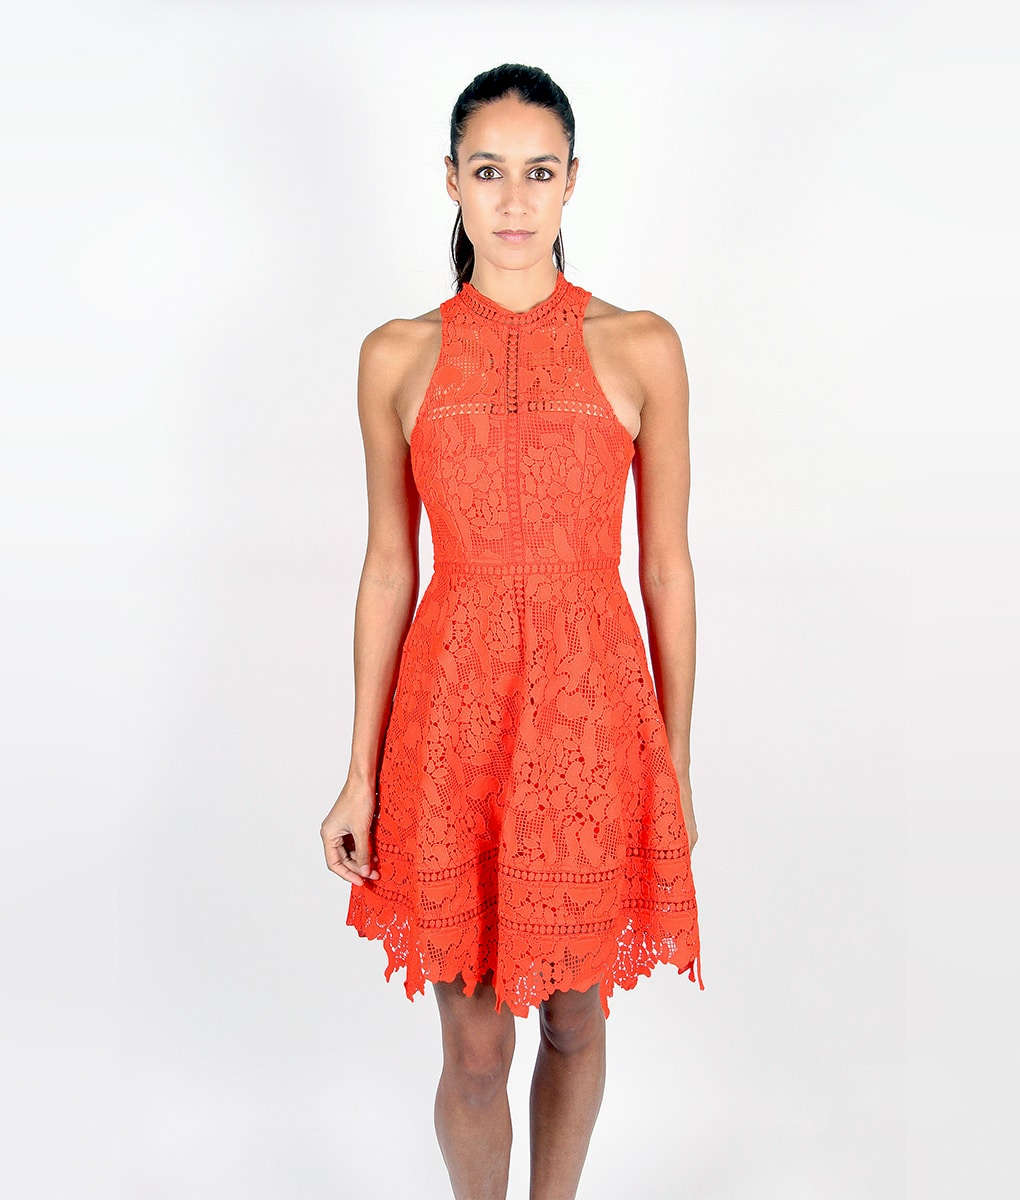 Alila-Tomatoe-Red-Lace-Crochet-Dress-by-Lumier-by-Bariano-front